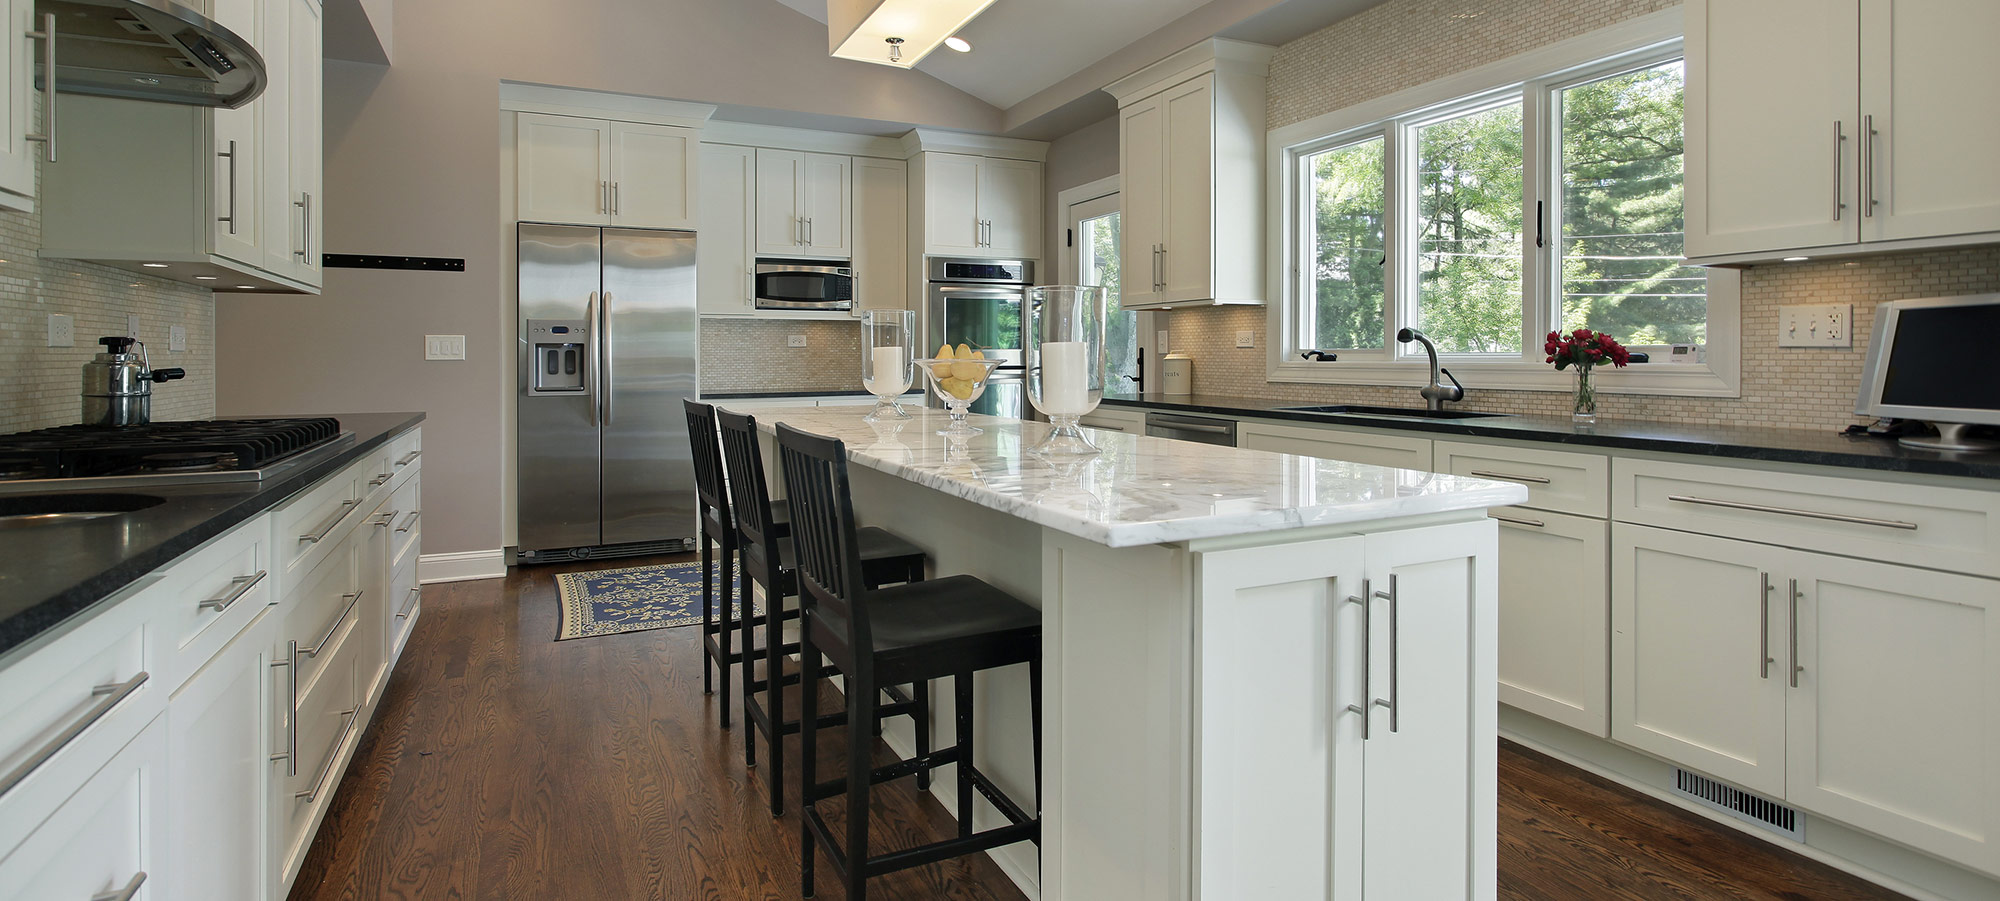 bigstock-Kitchen-in-luxury-home-with-gr-75636427